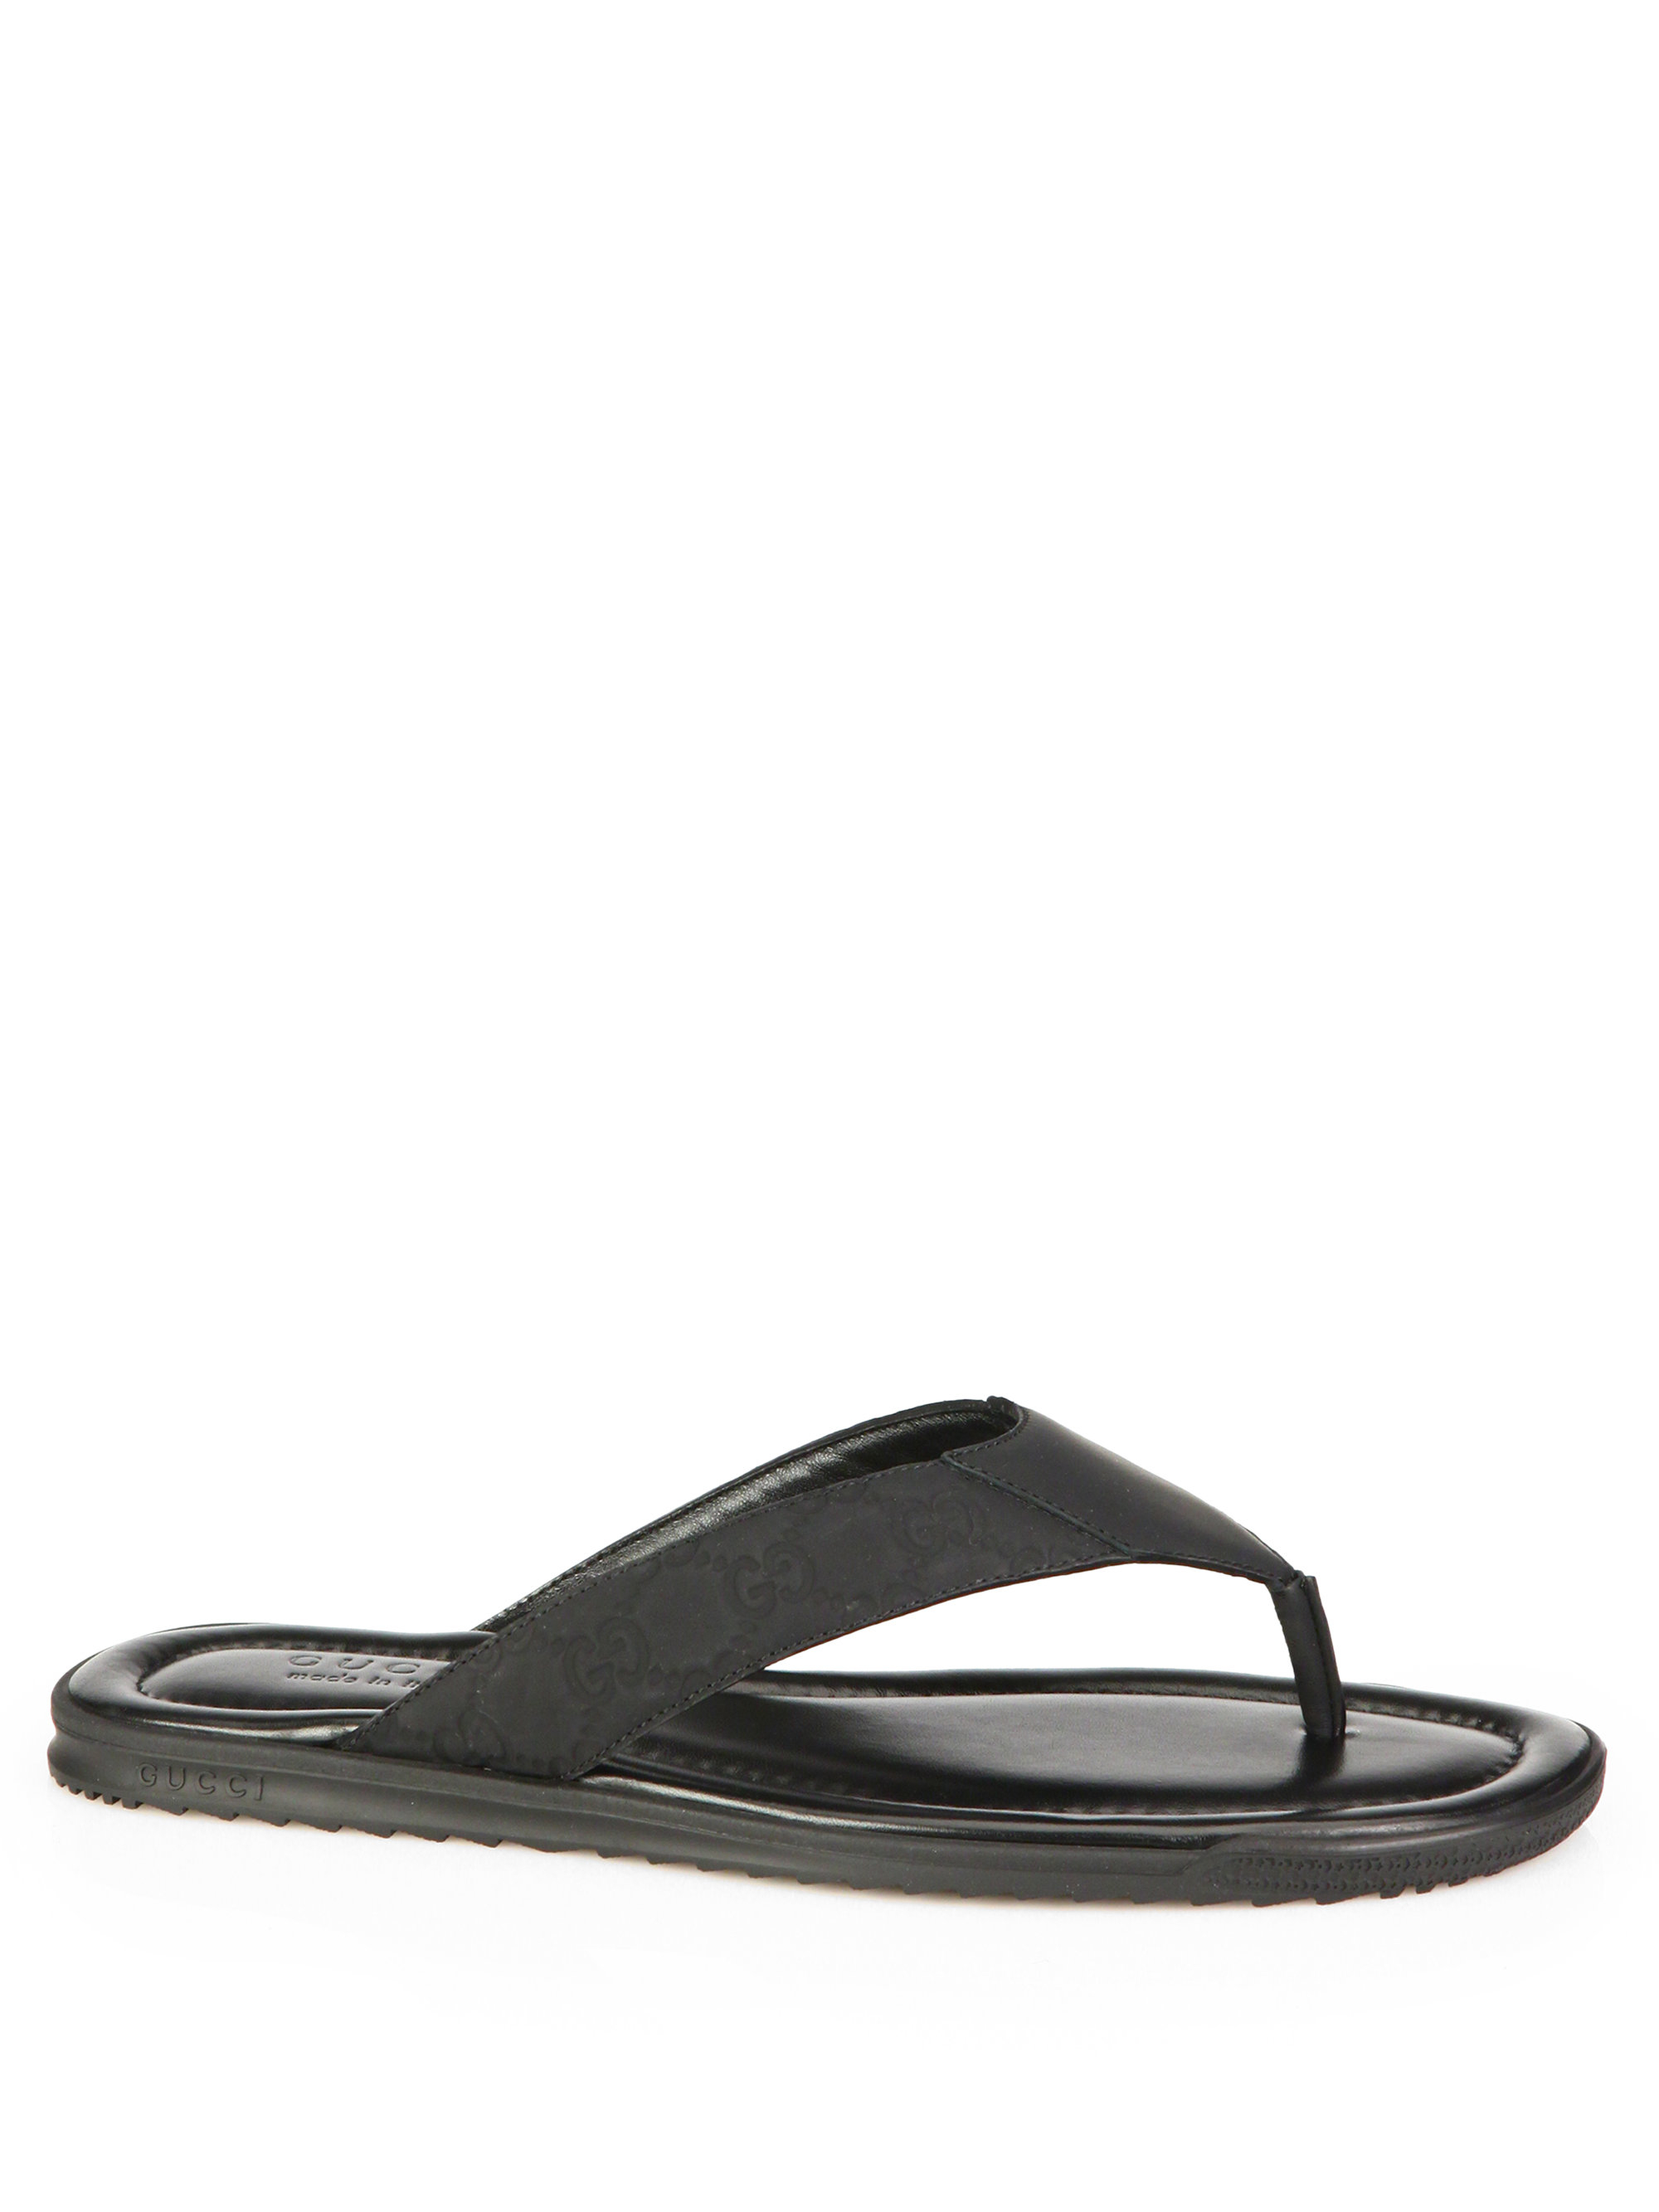 Gucci Rubberized Leather Gg Thong Flip Flops In Black For